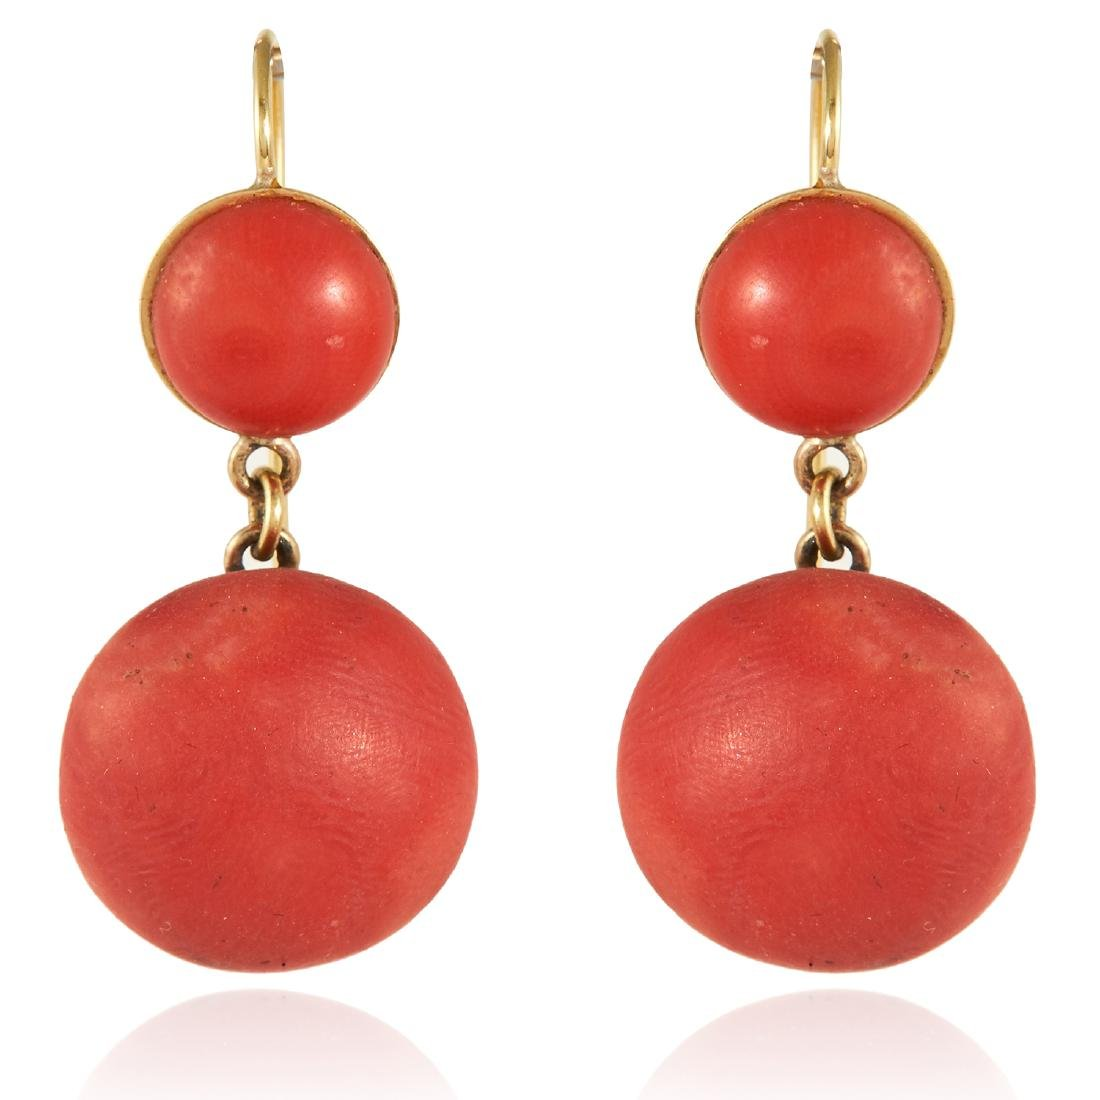 A PAIR OF ANTIQUE CORAL DROP EARRINGS, 19TH CENTURY in